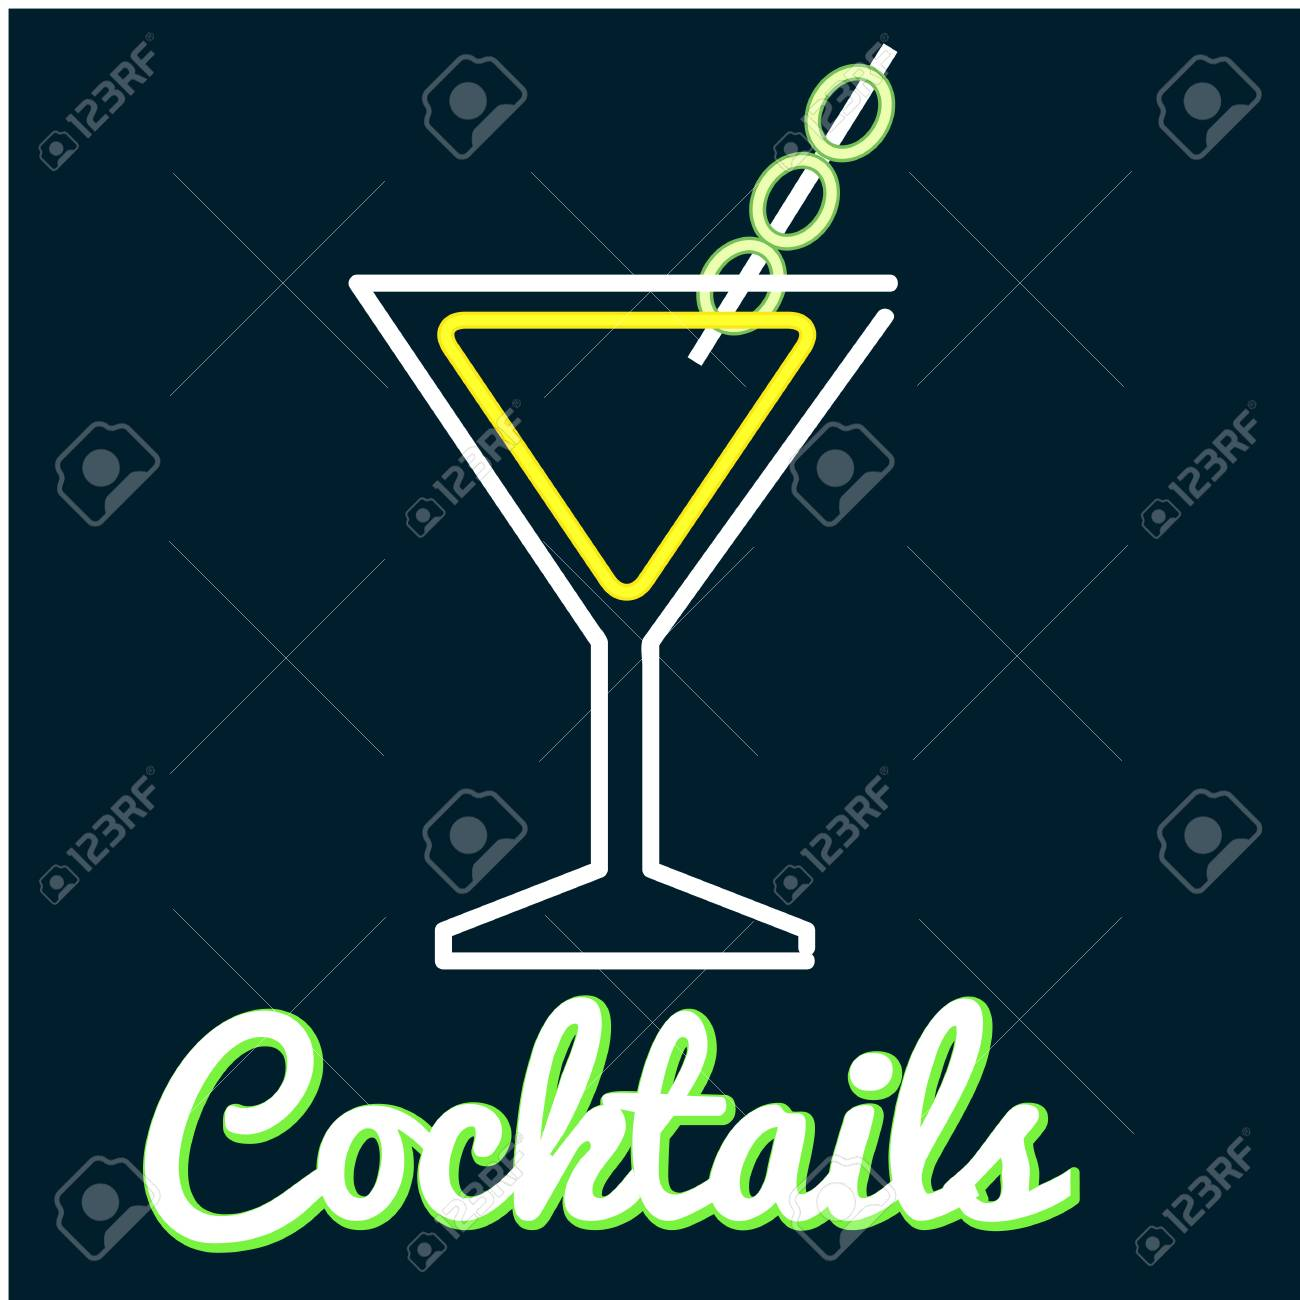 64eff354a064 Cocktail Glass Of Cocktail Neon Background Vector Image Stock Vector -  96962088